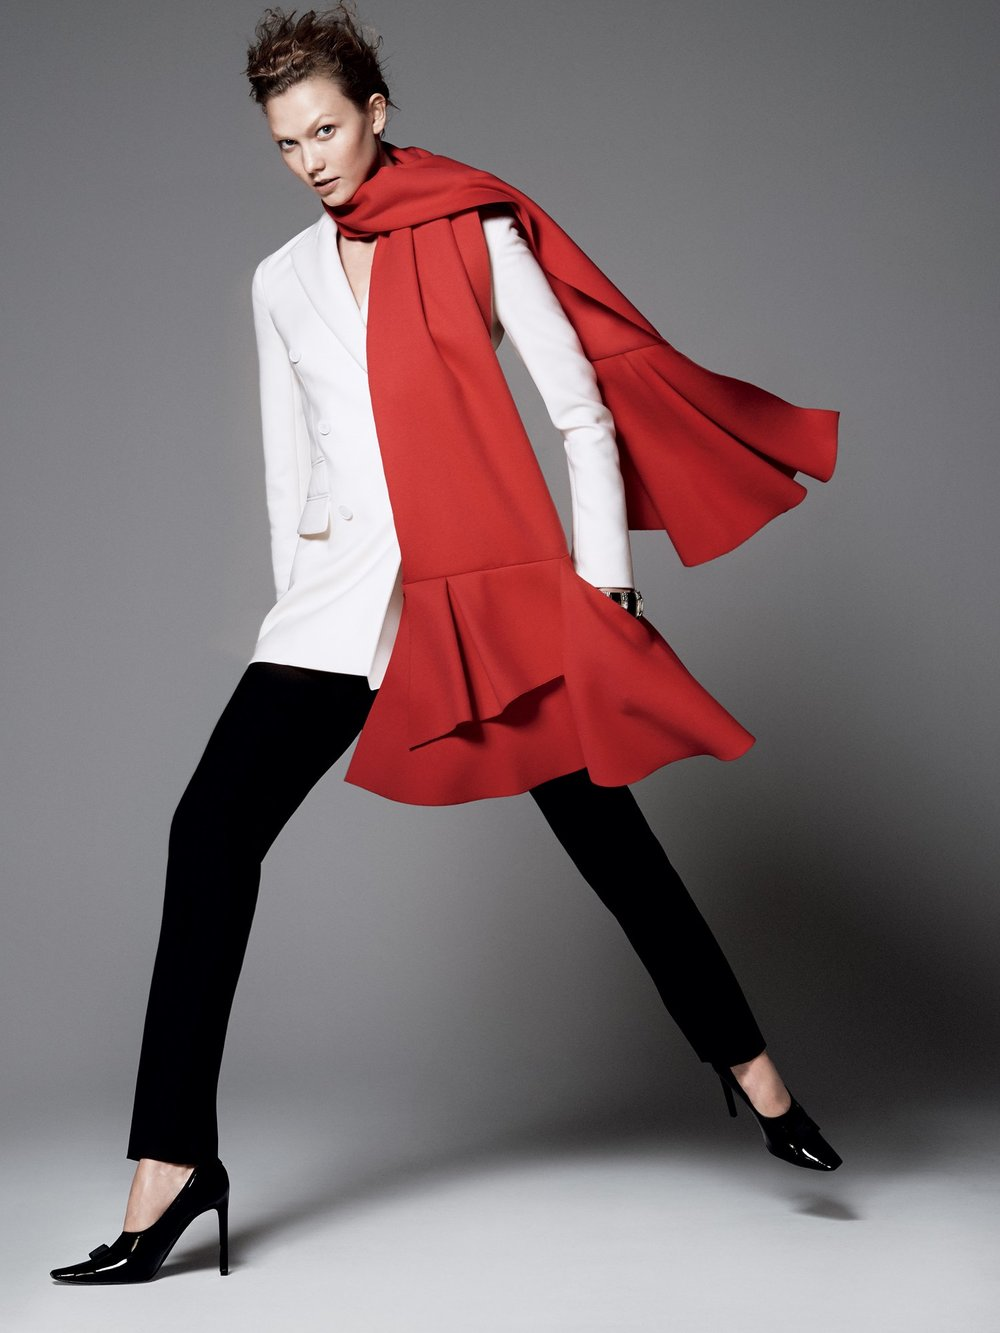 Karlie Kloss in a Christian Dior Jacket,pants and scarf